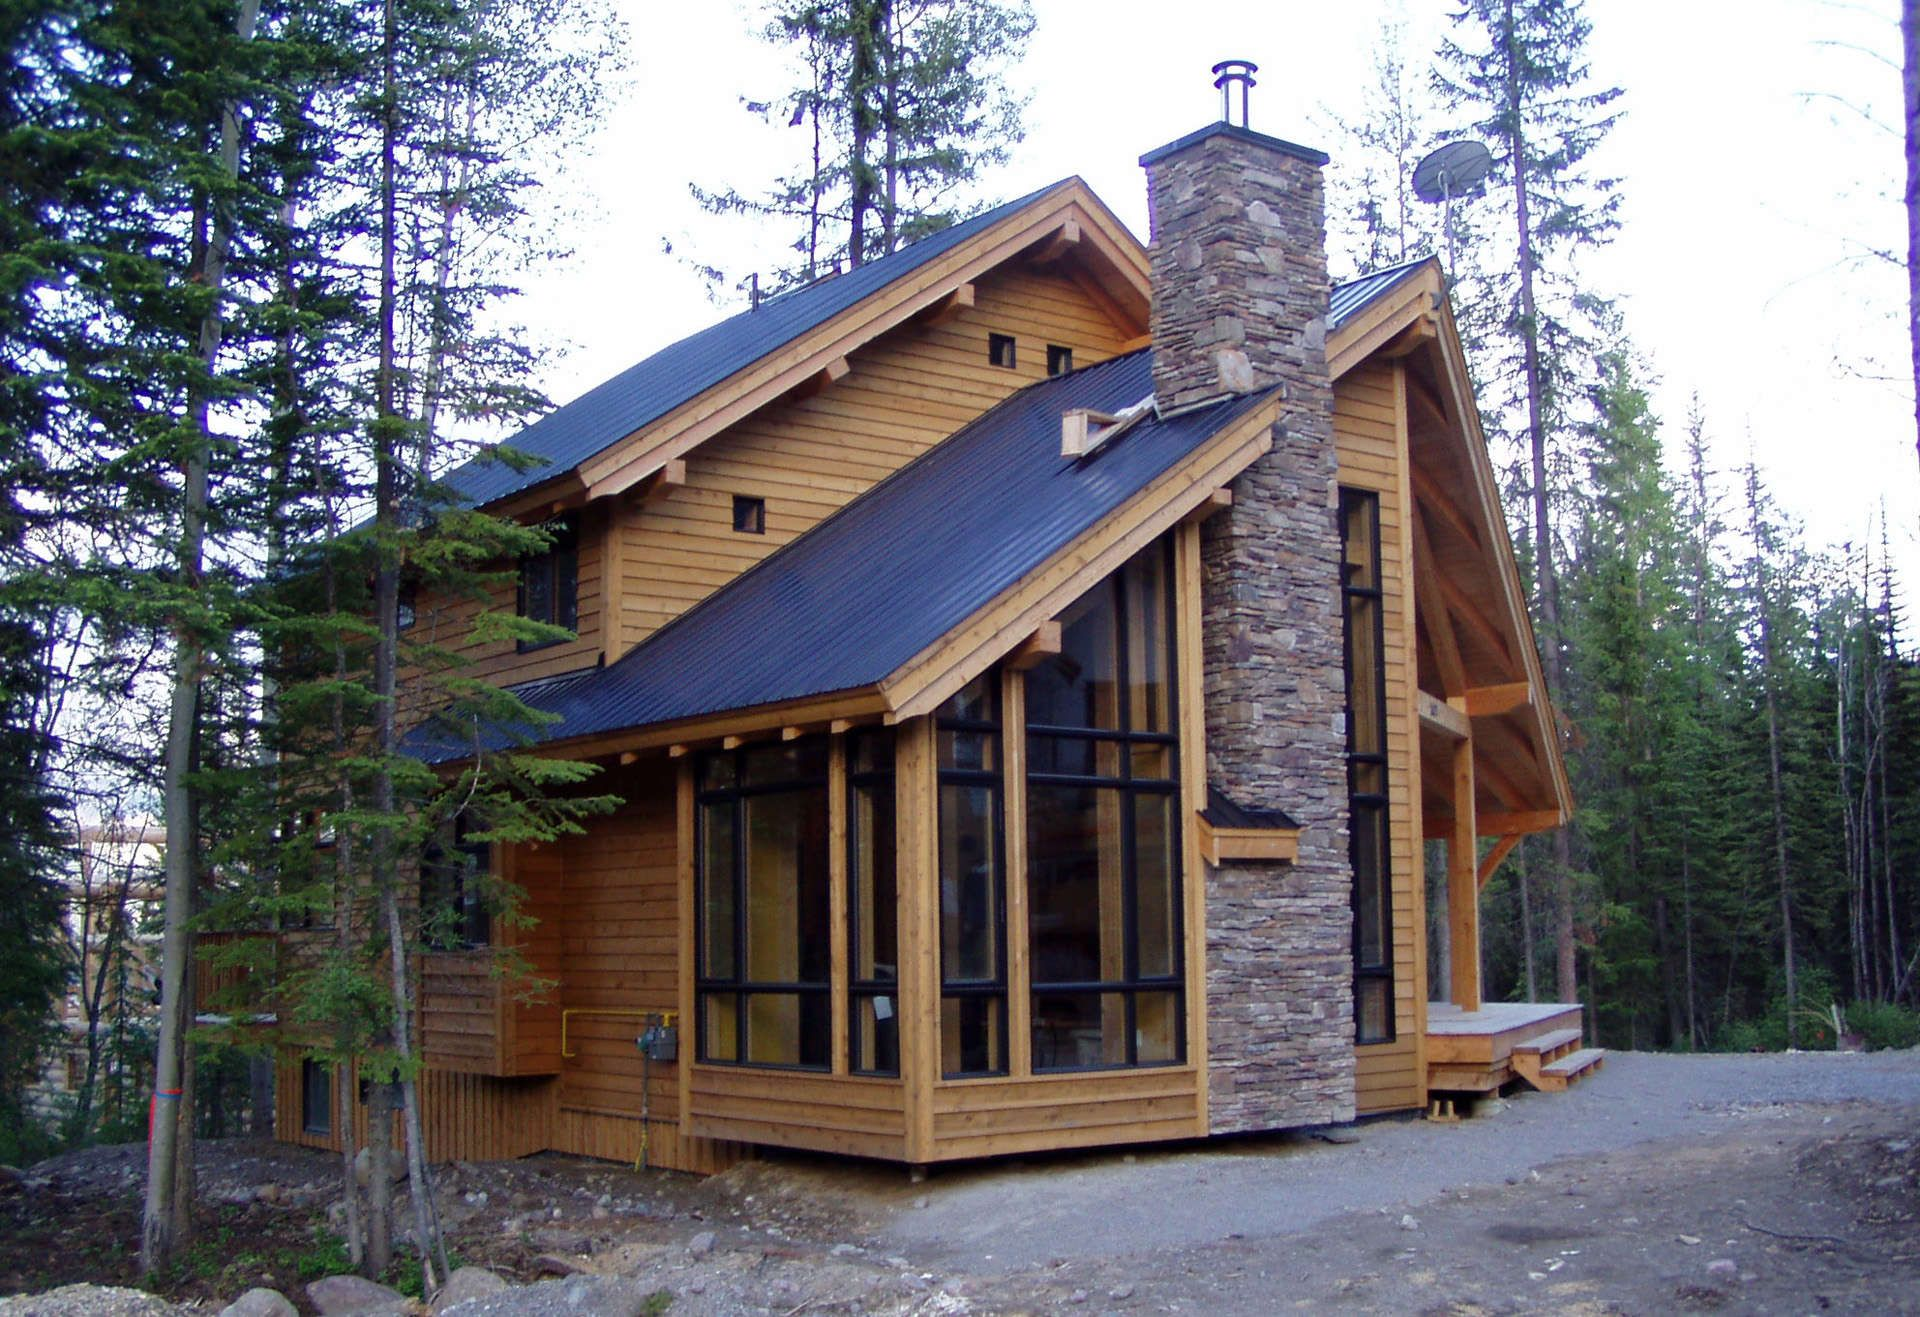 Canadian Timber Frames Metal House Plans Cottage Plan Timber Frame Home Plans